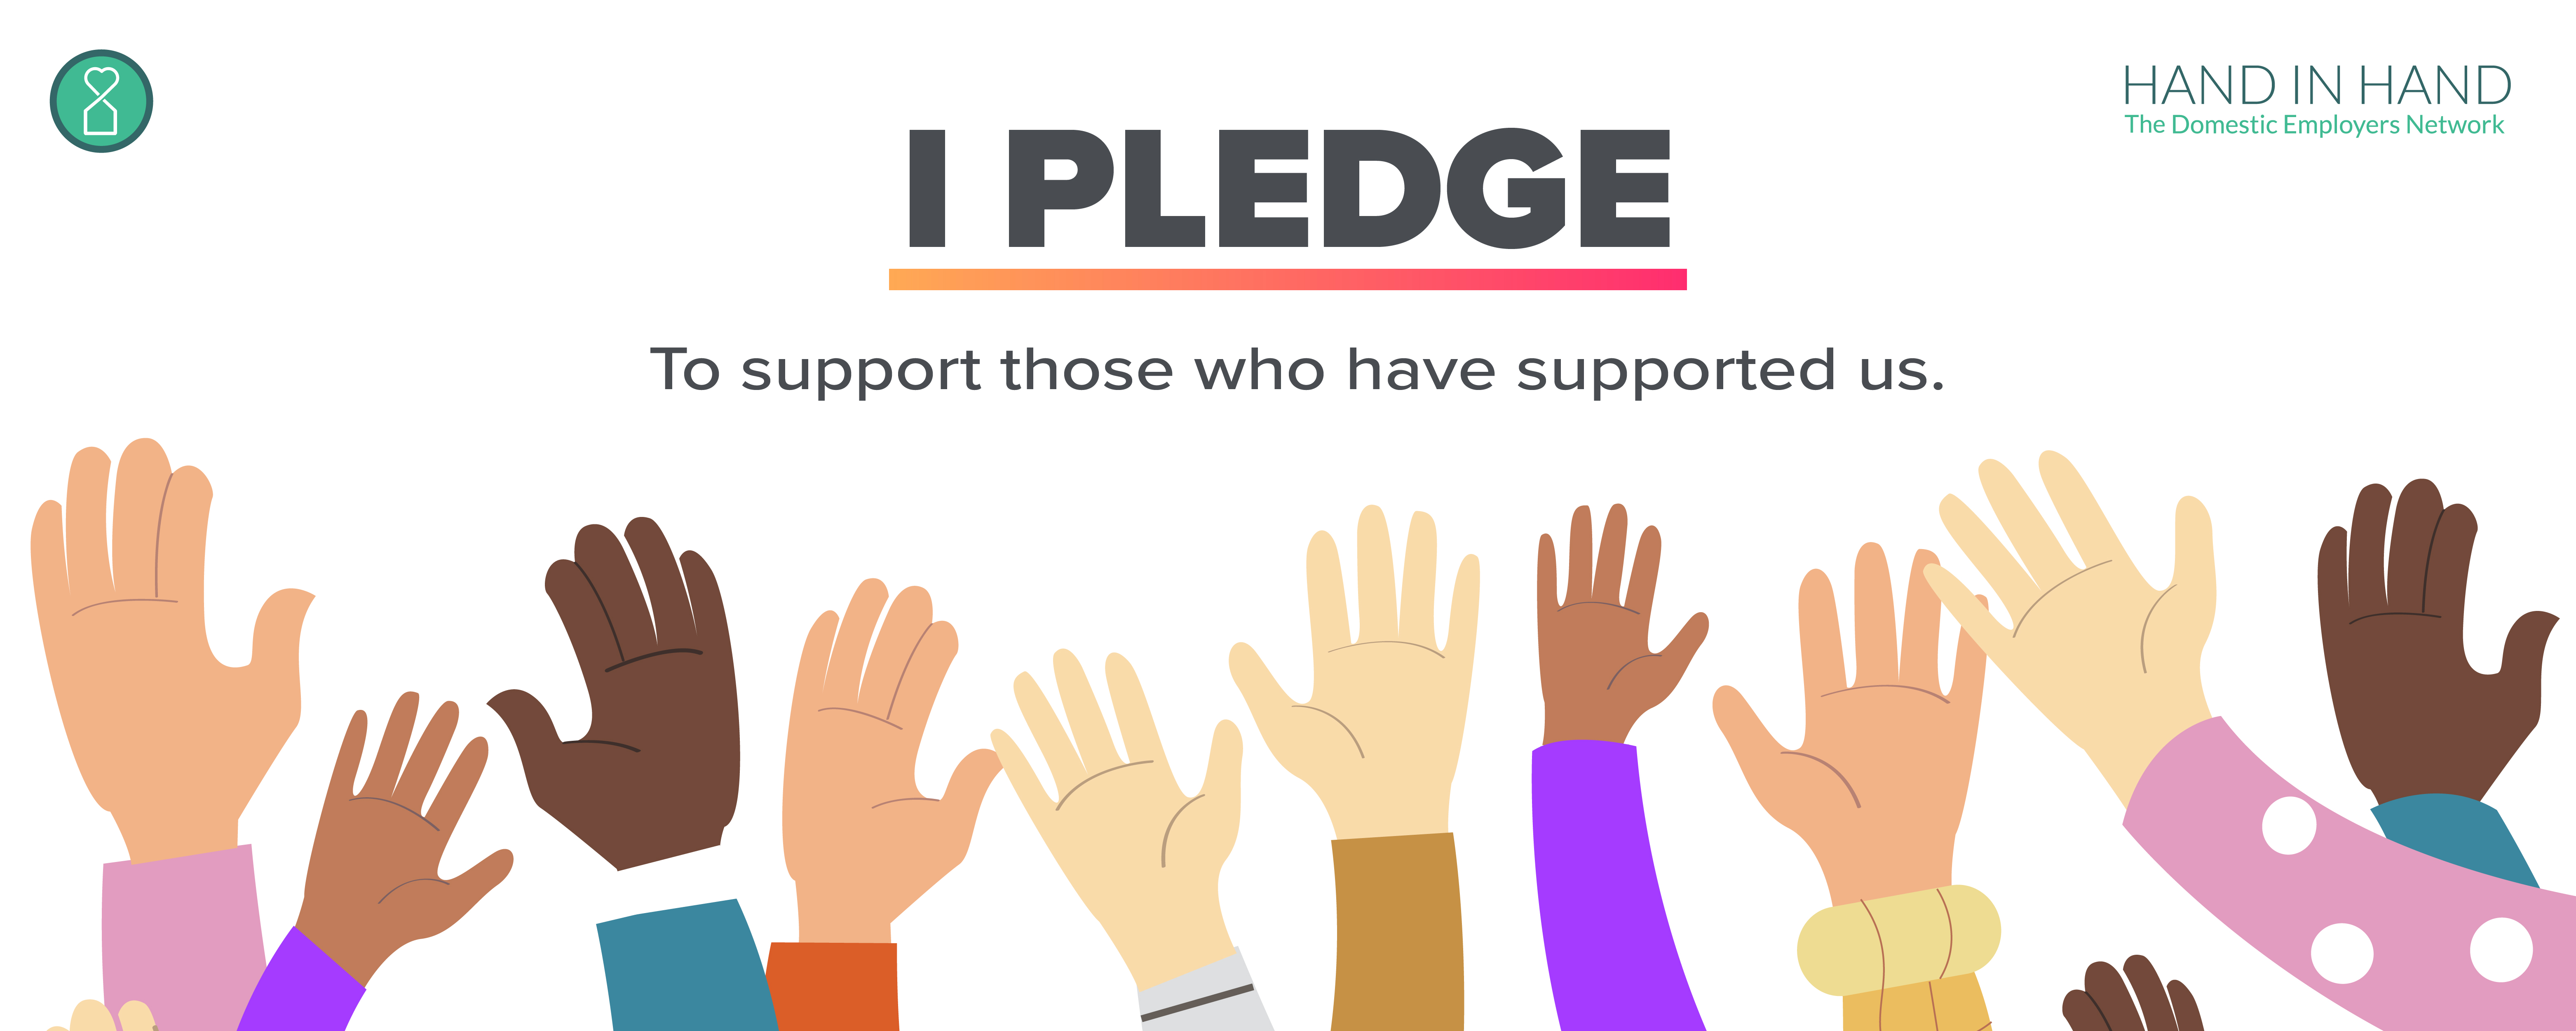 I pledge to support those who support us.  Illustrated hands raised.